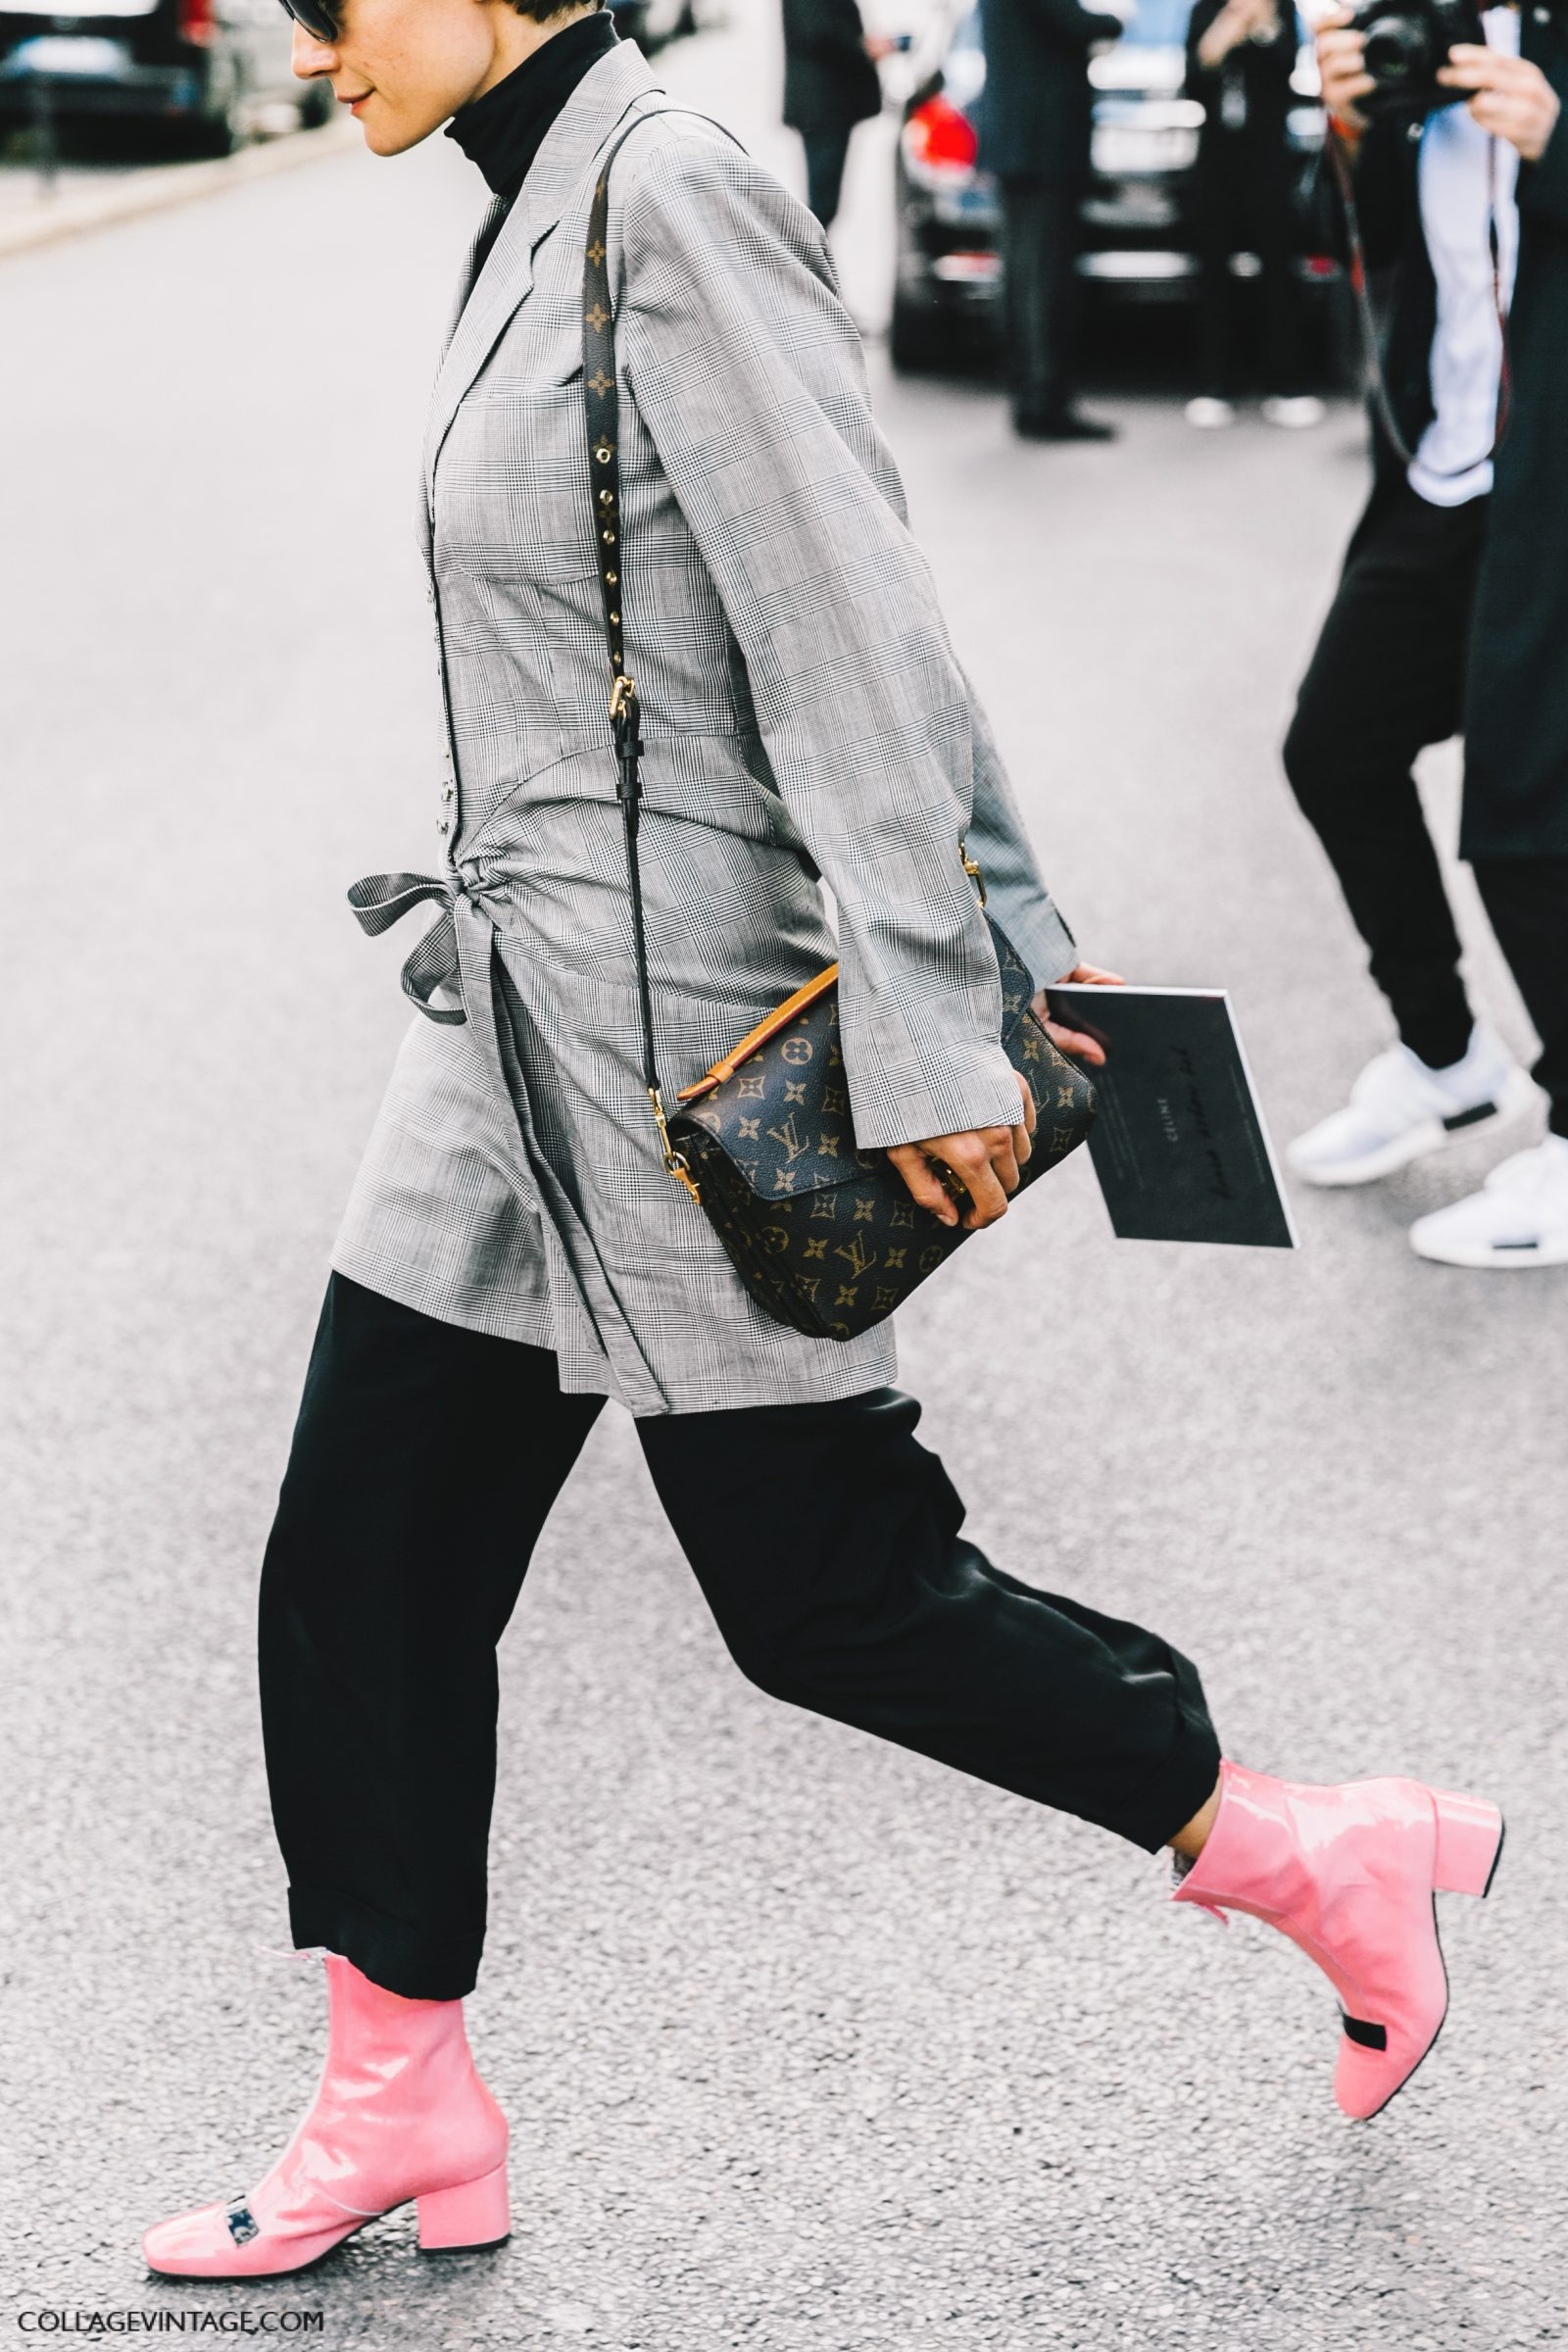 pfw-paris_fashion_week_ss17-street_style-outfits-collage_vintage-valentino-balenciaga-celine-59